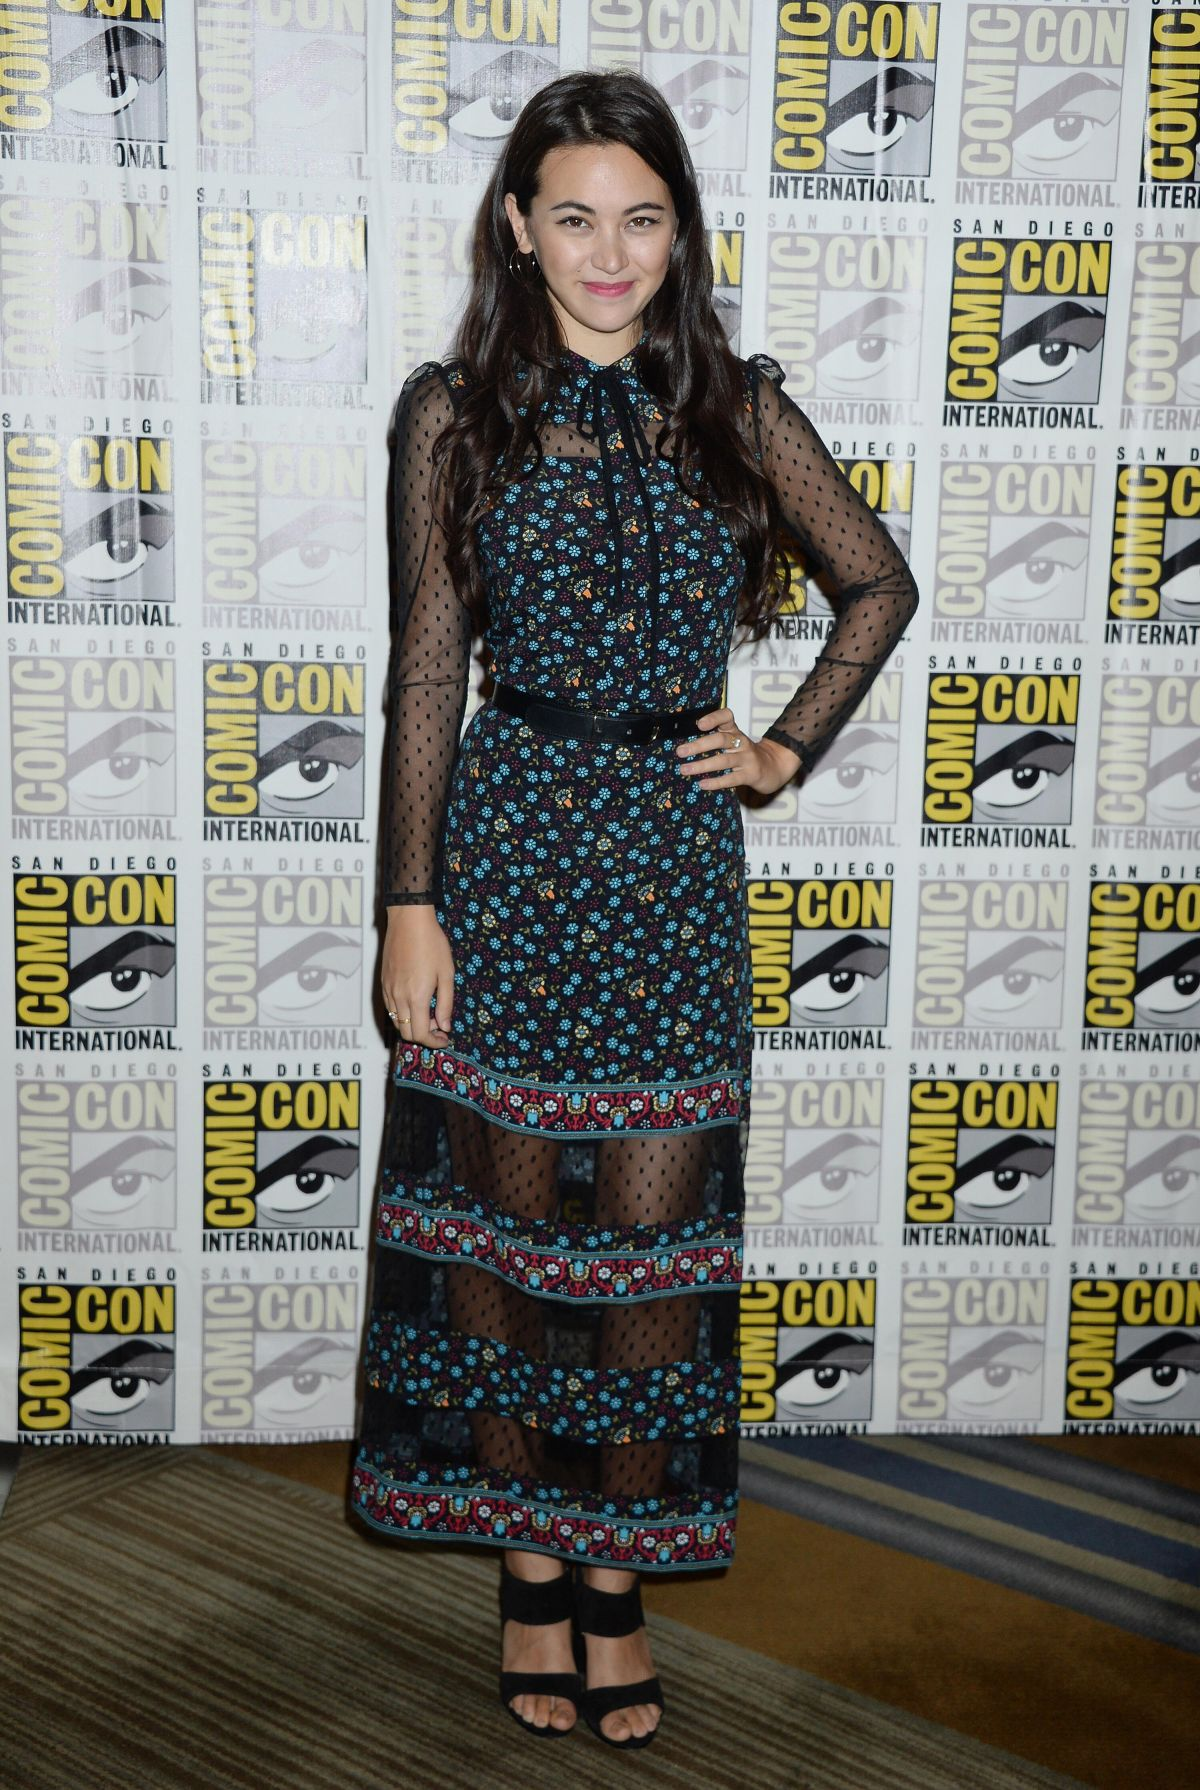 JESSICA HENWICK at The Defenders Presentation at Comic-con in San Diego 07/21/2017